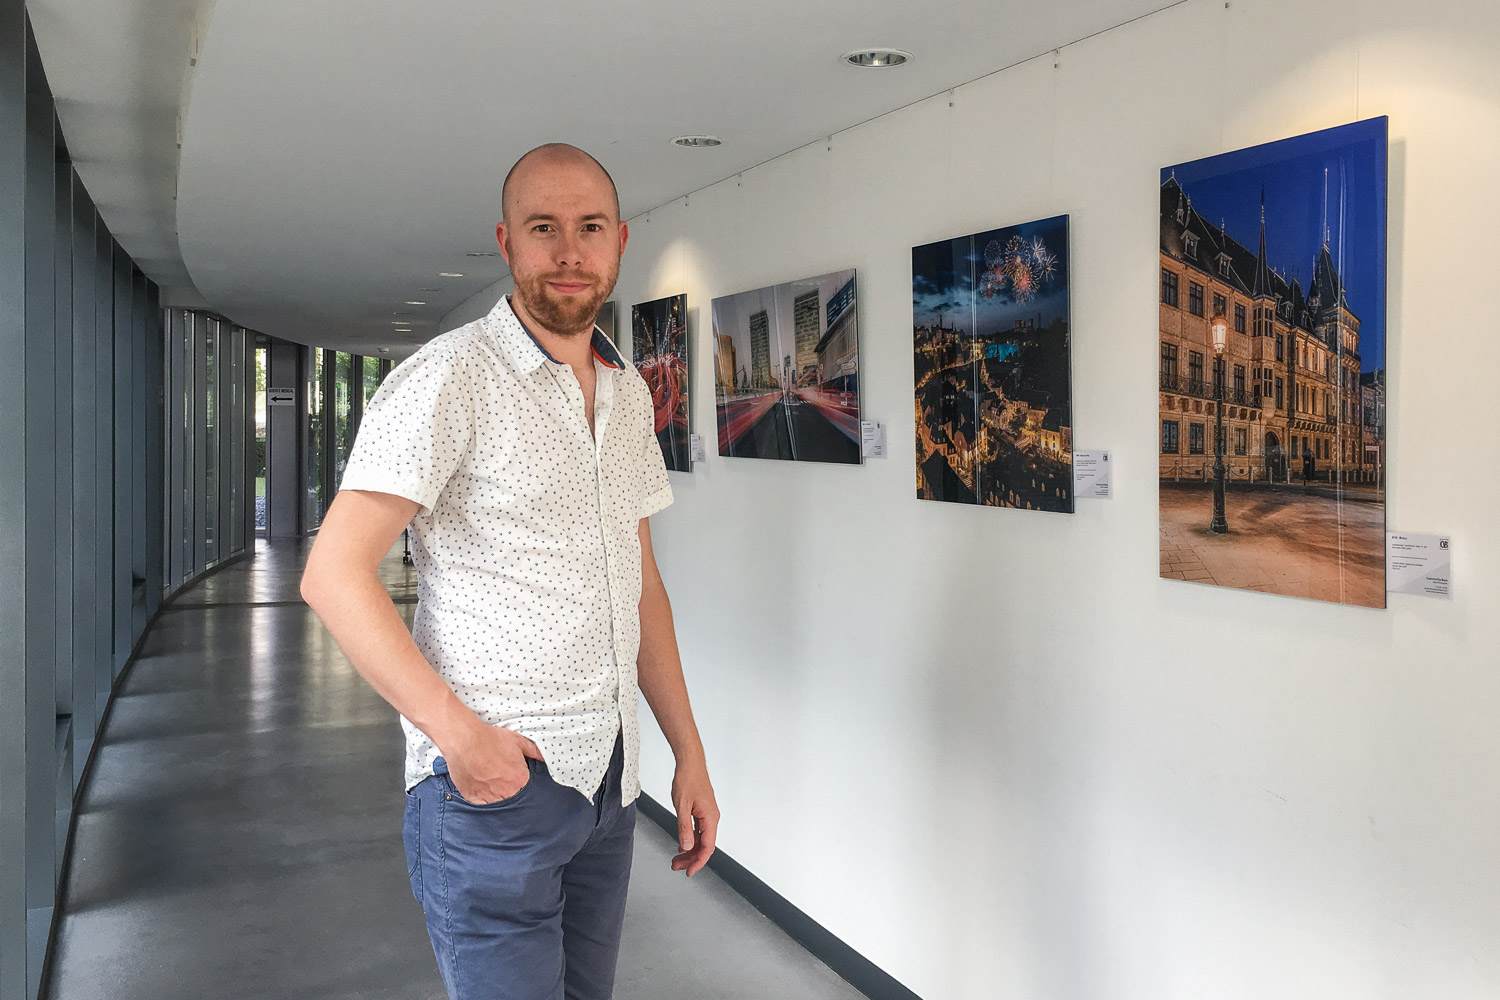 Exhibition at the European Court of Auditors - Photography exhibition by Christophe Van Biesen at the ECA in Luxembourg City - Photography by Christophe Van Biesen - Luxembourg Landscape and Travel Photographer